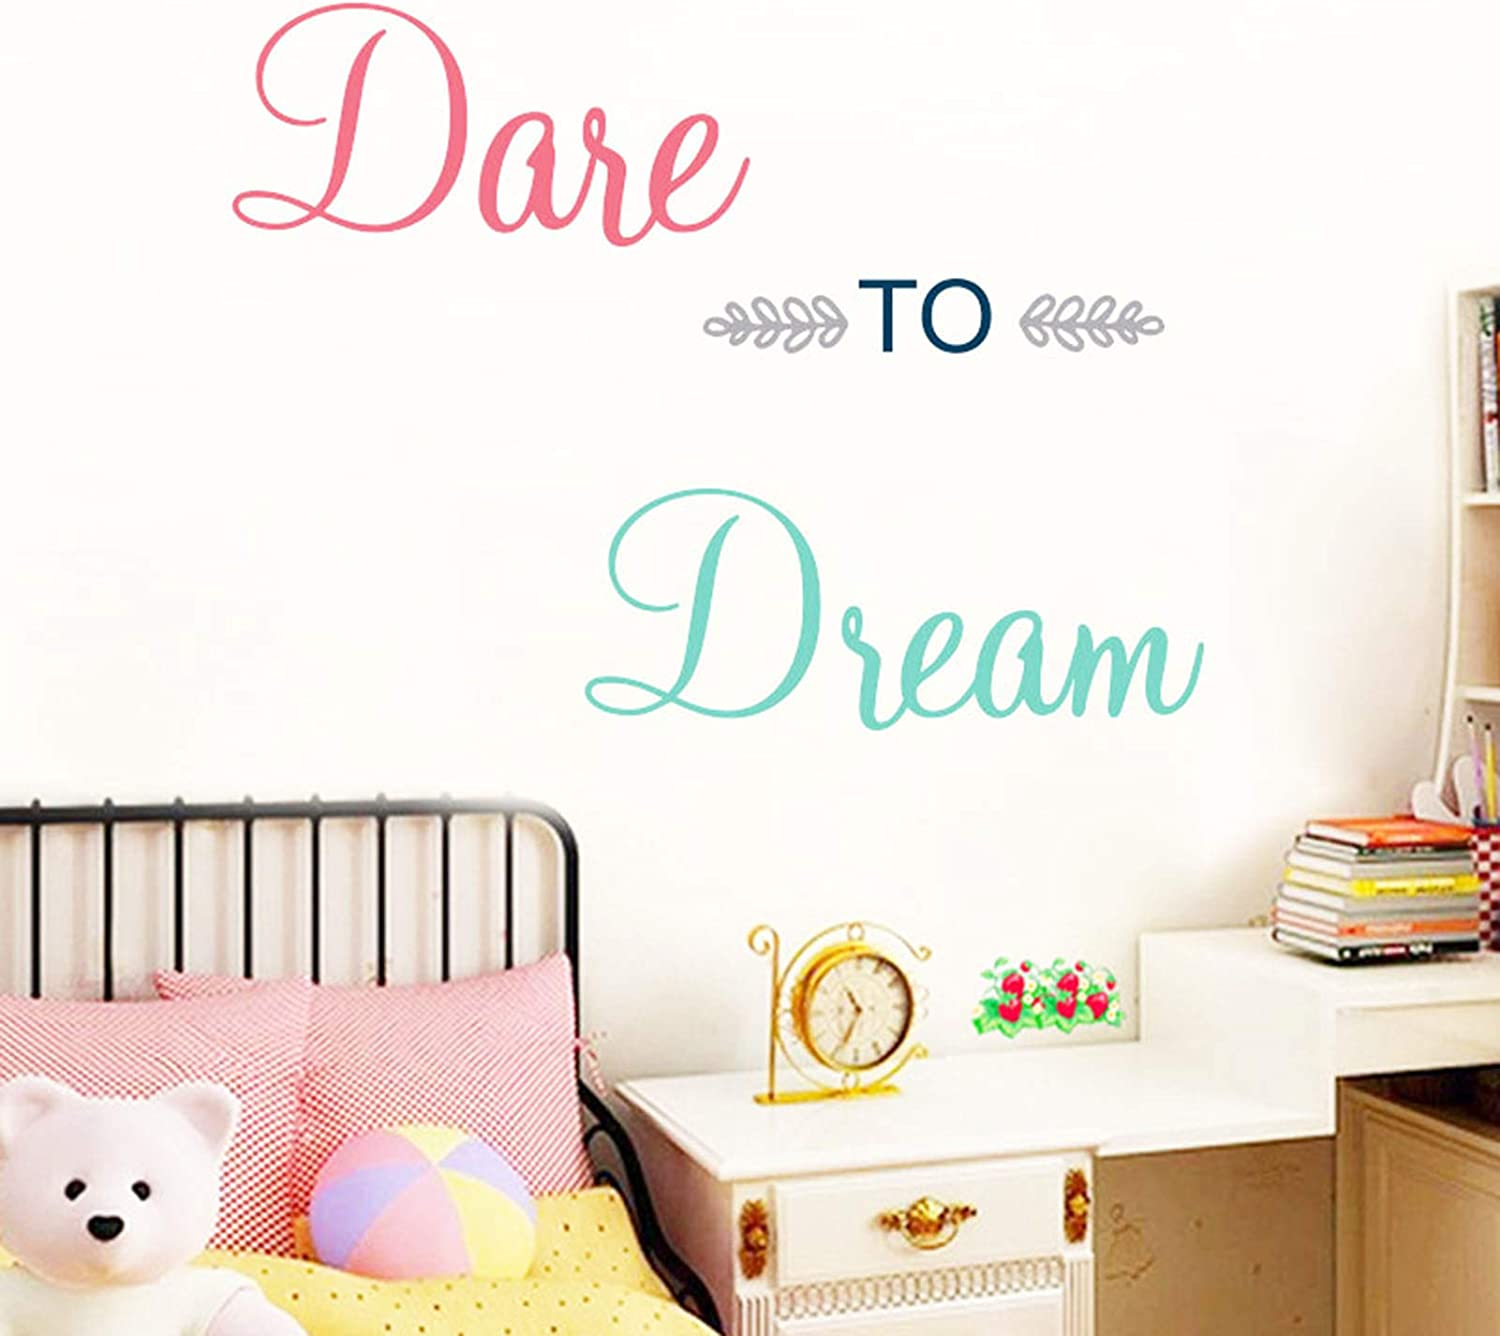 Inspirational Wall Decor Quotes for Boy Girl Room –Dare to Dream– Decor for Living Room Bedroom Classroom Playroom Nursery Girls Boys Room Wall Decals Decorations